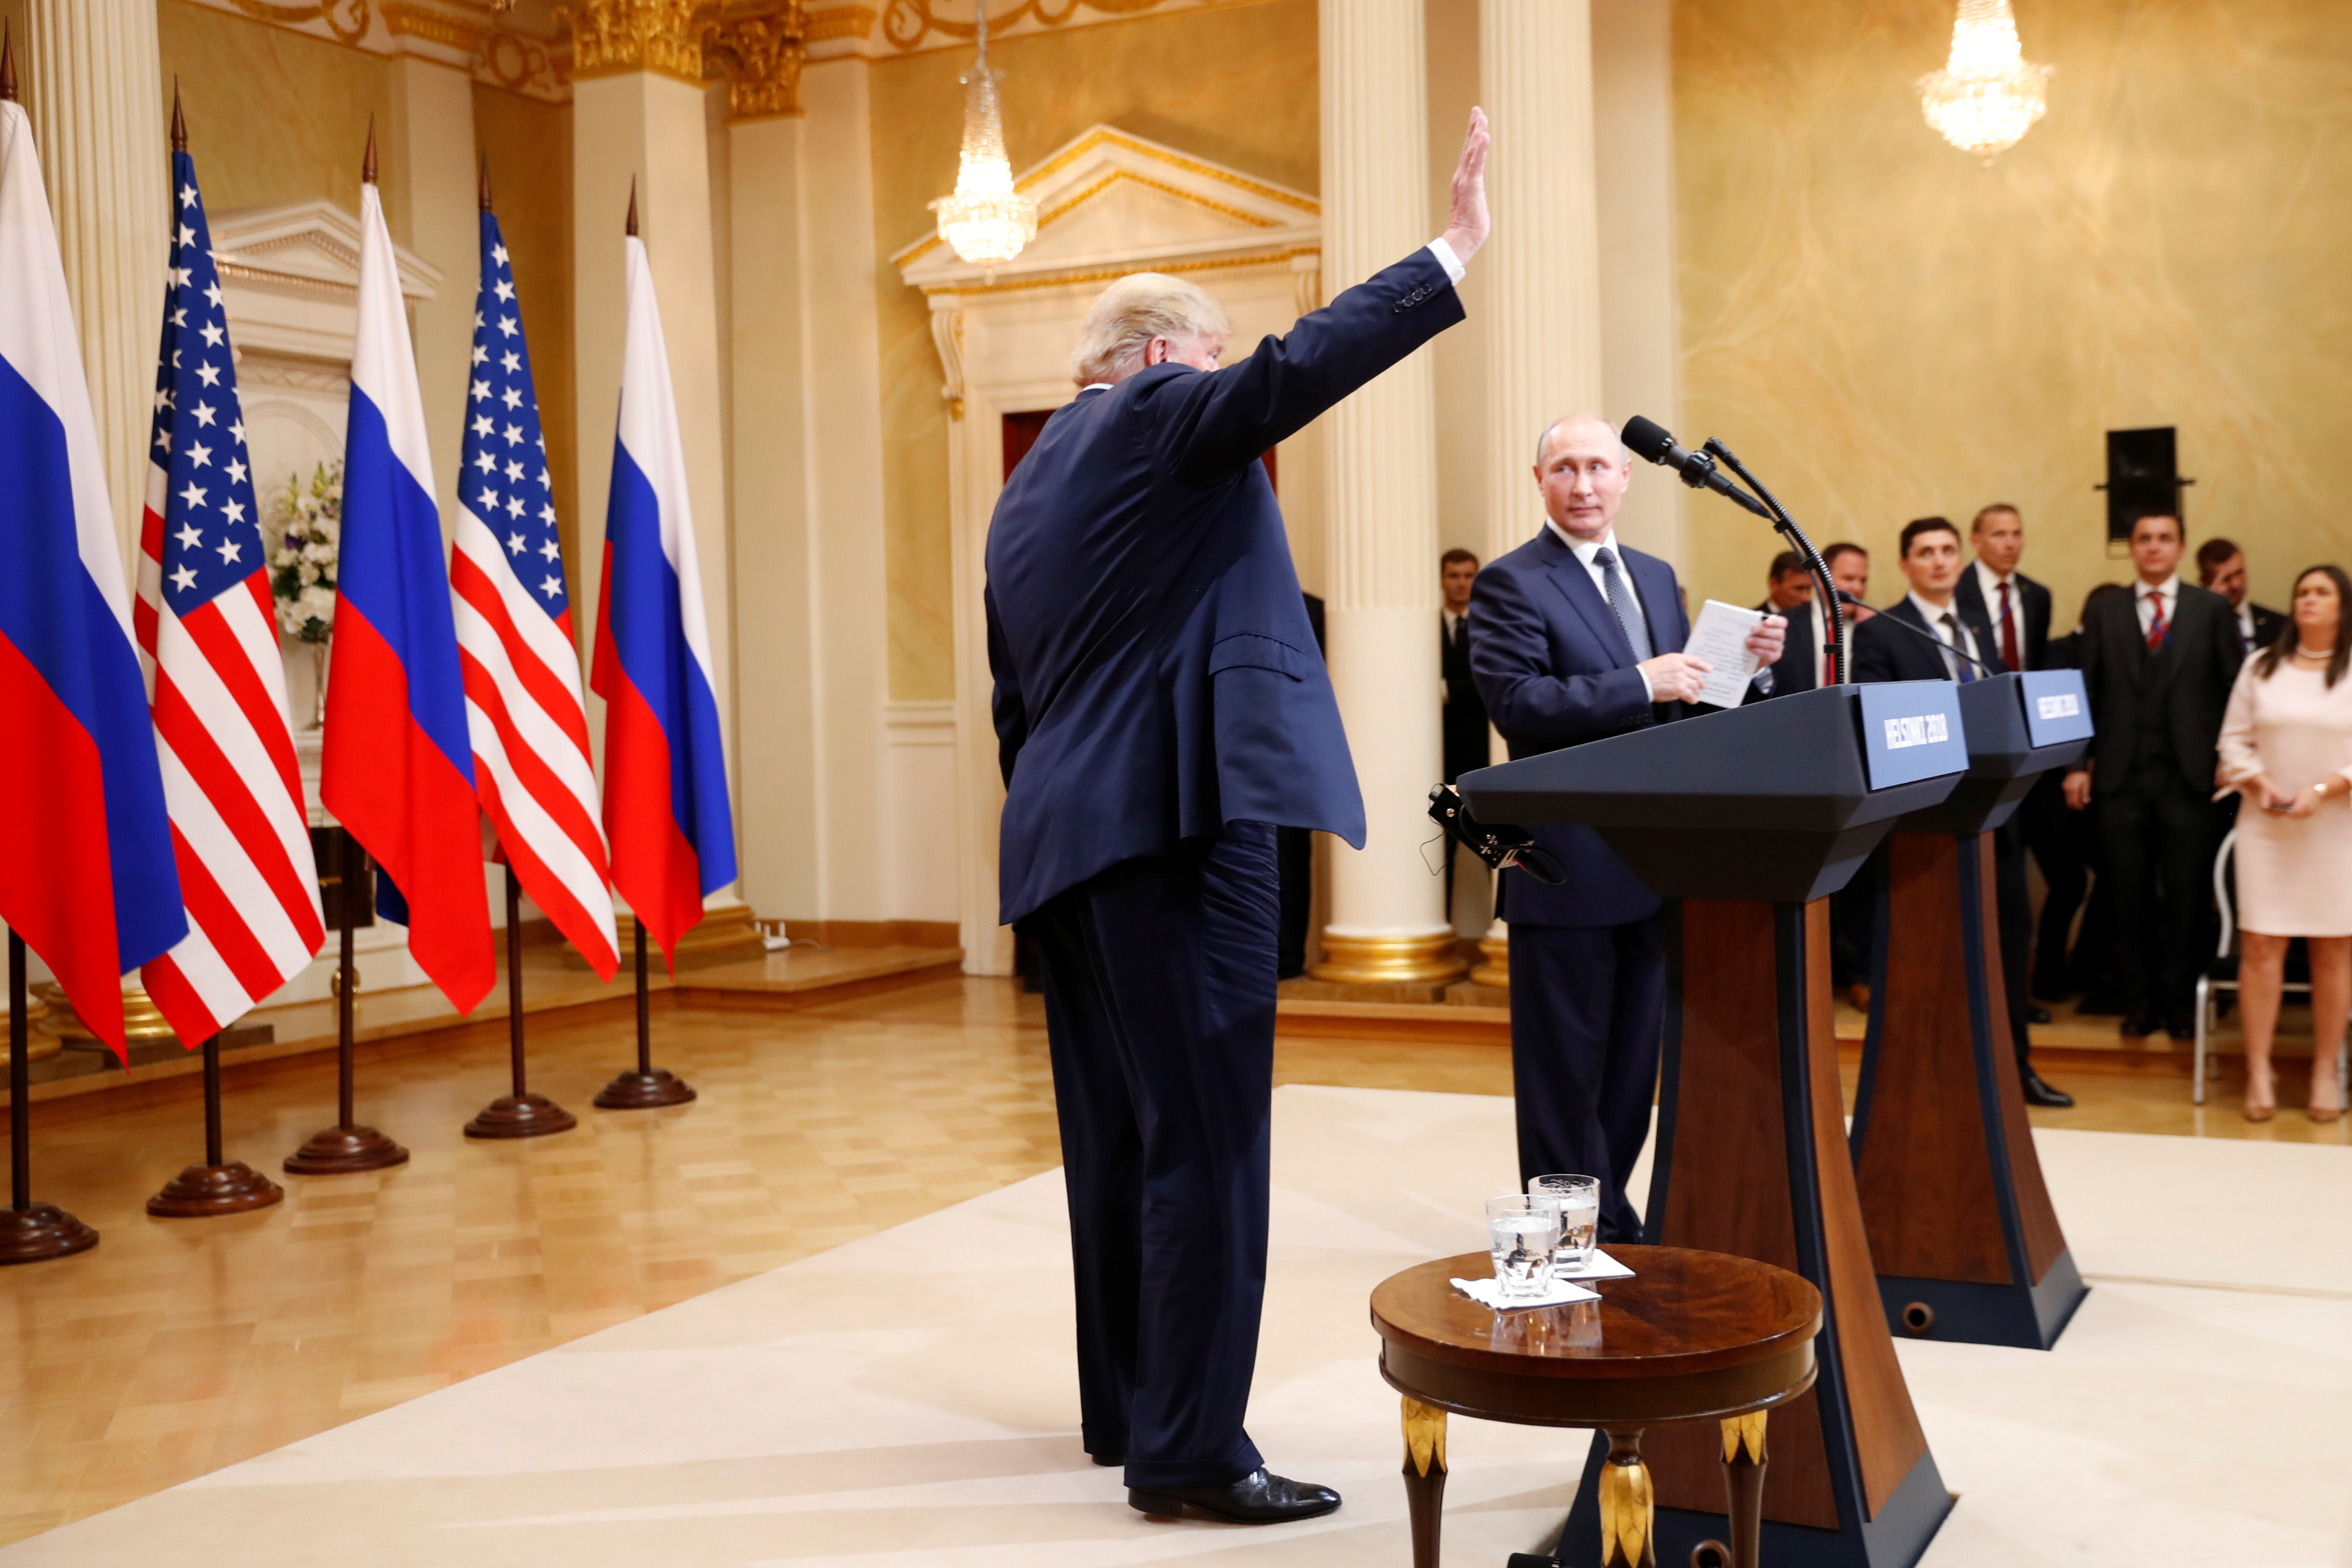 U.S. President Donald Trump waves after a joint news conference with Russia's President Vladimir Putin after their meeting in Helsinki, Finland, July 16, 2018. REUTERS/Kevin Lamarque - RC14F642E170